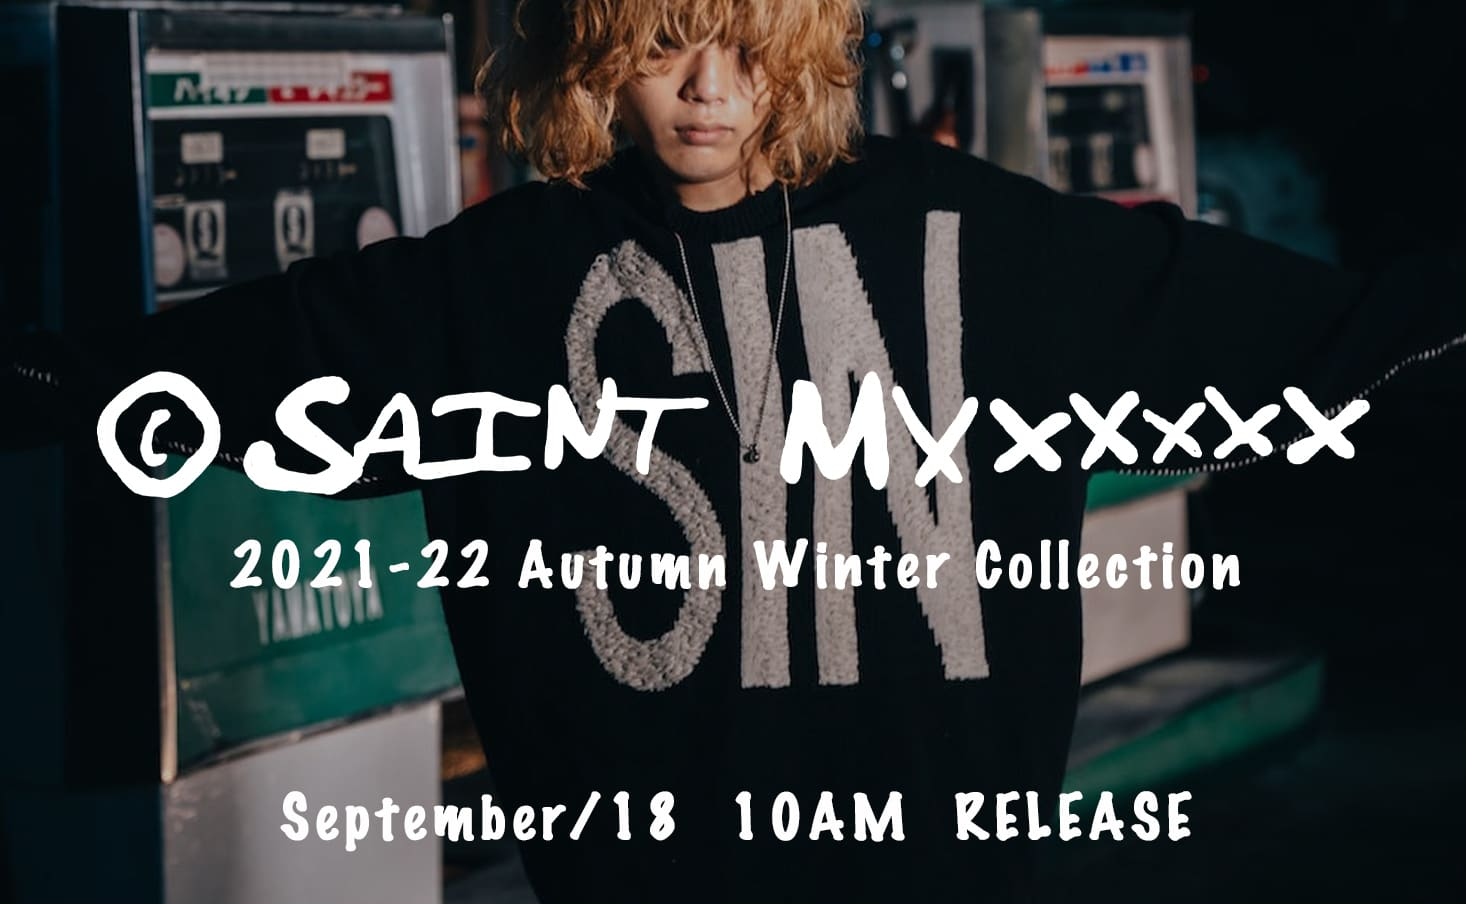 SAINT MICHAEL 2021-22 AW Collection will be available at 10 AM on September 18(Sat) in the store and our online shop site!